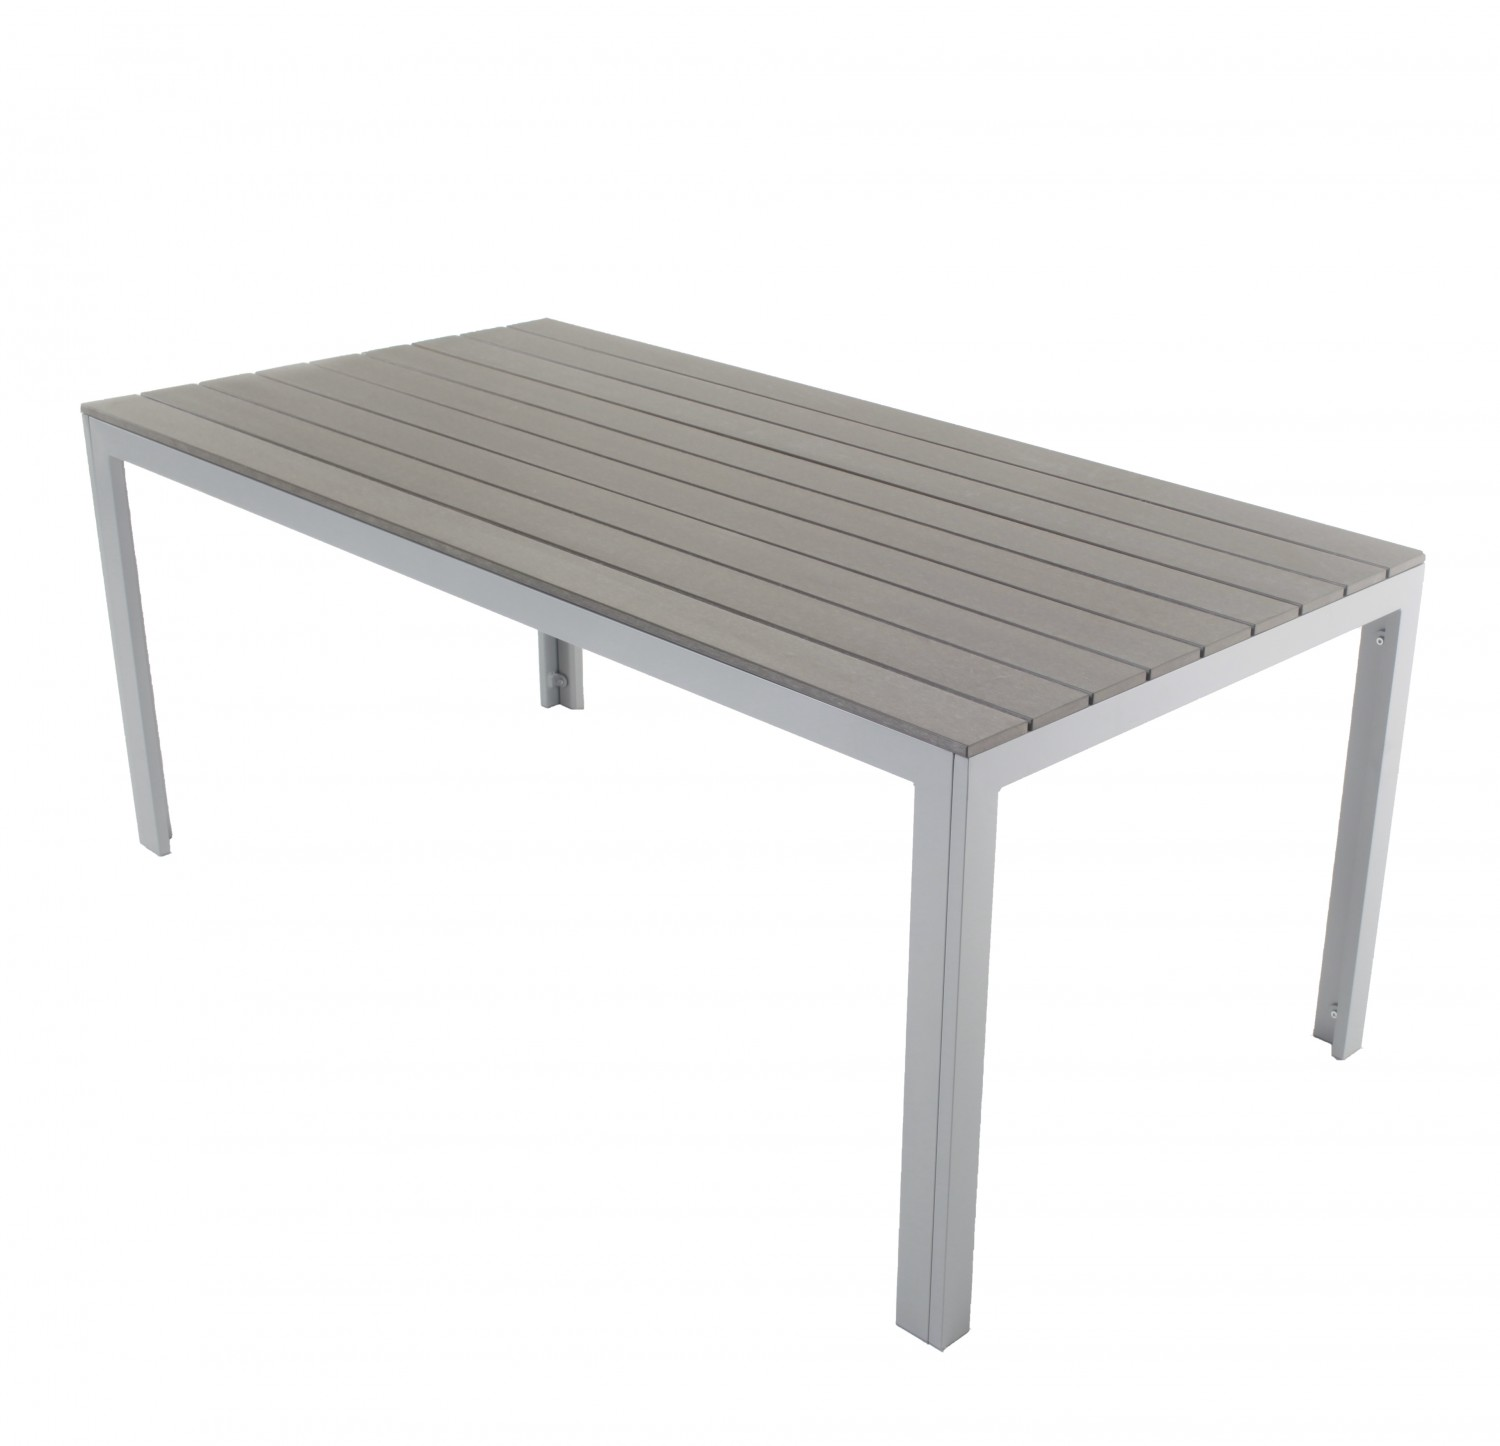 Gartentisch 180 x 90 cm grau online shop gonser for Tisch iphone design